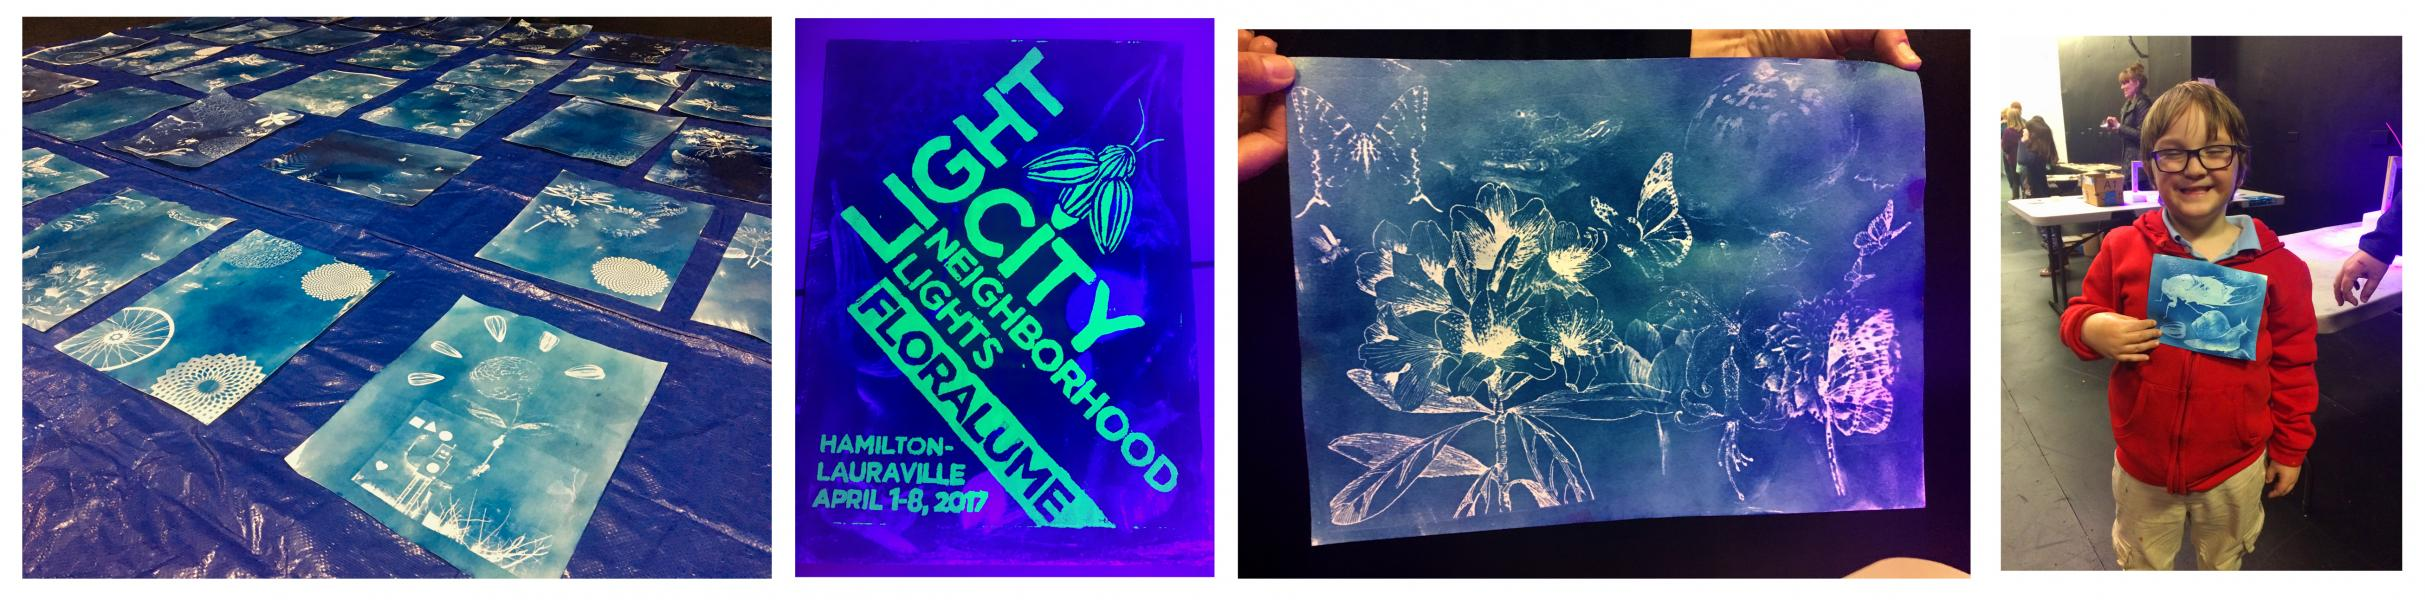 Documentation of the cyanotype posters 100+ families made at The Strand Theater in Hamilton.